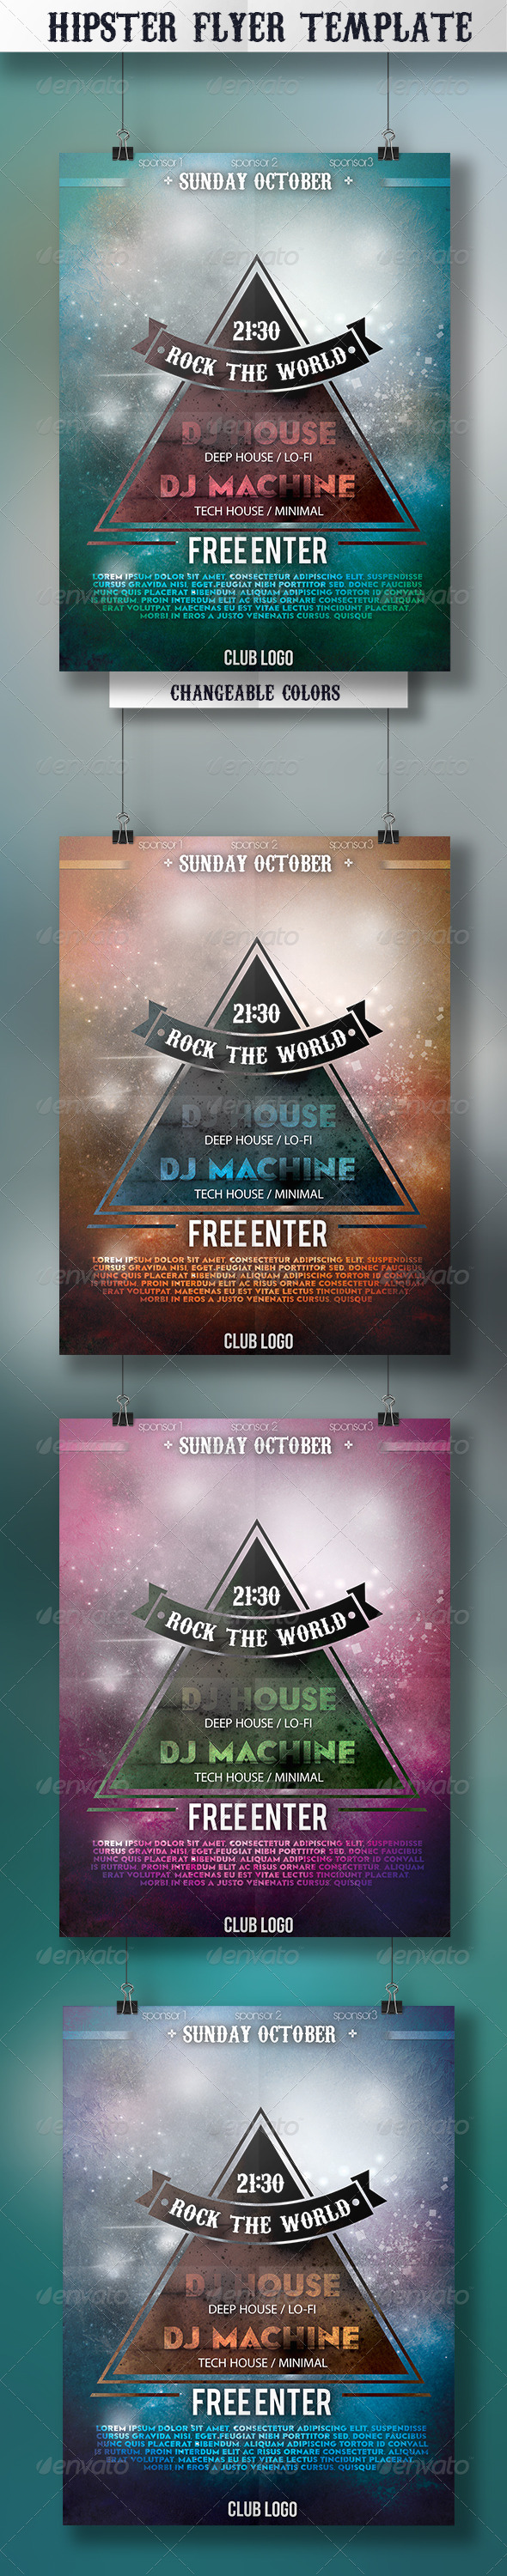 Hipster Flyer Template - Events Flyers